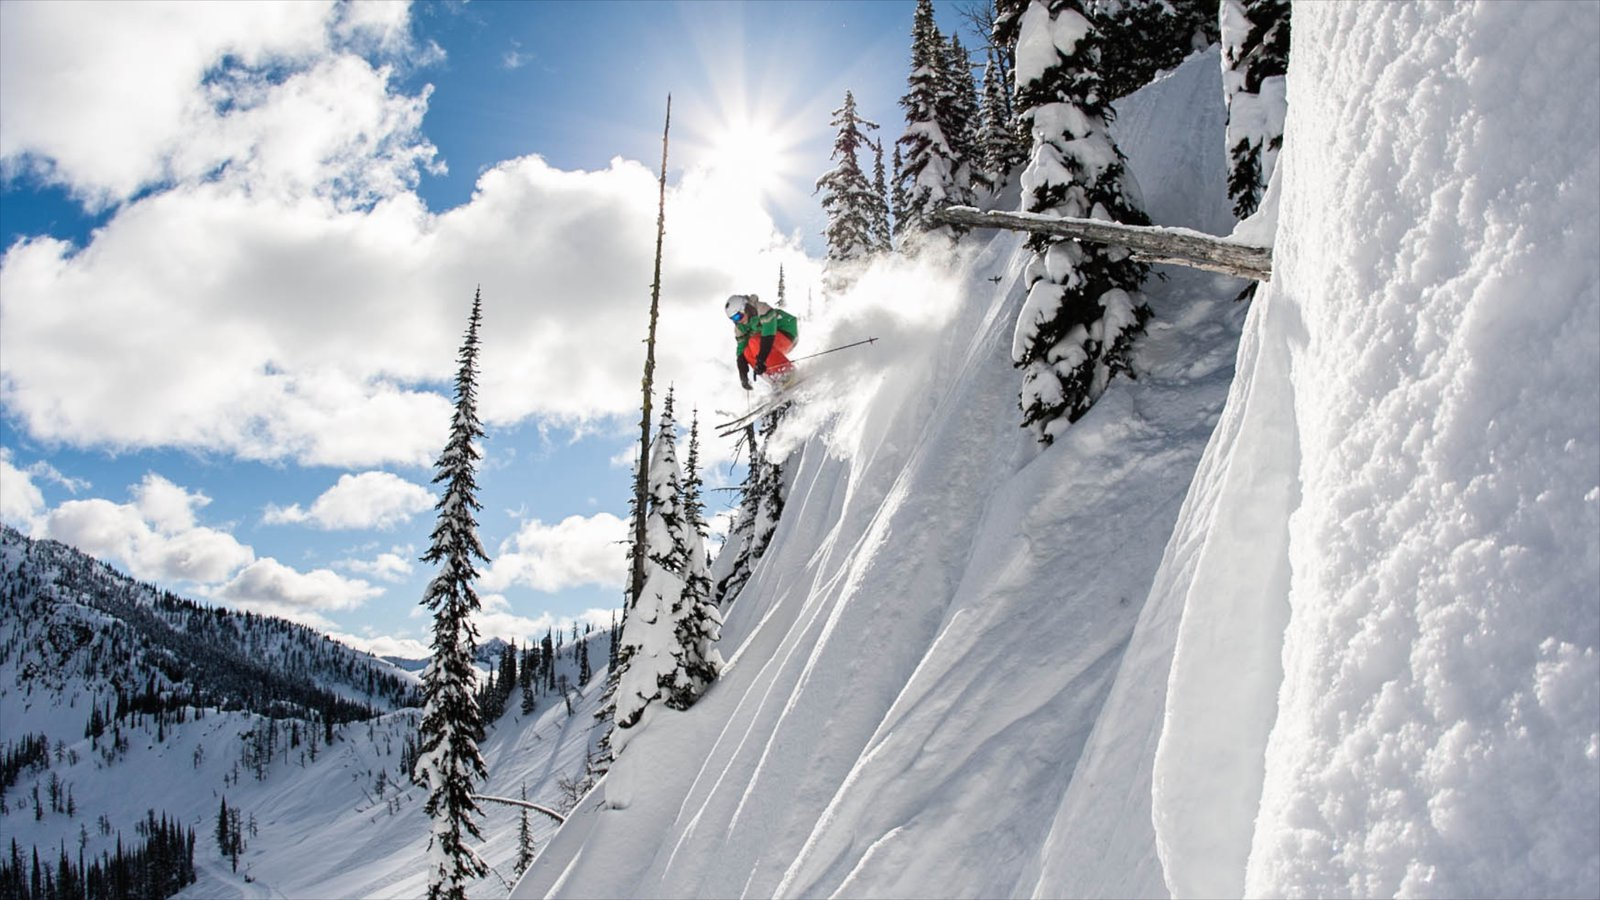 whitewater ski resort pictures: view photos & images of whitewater